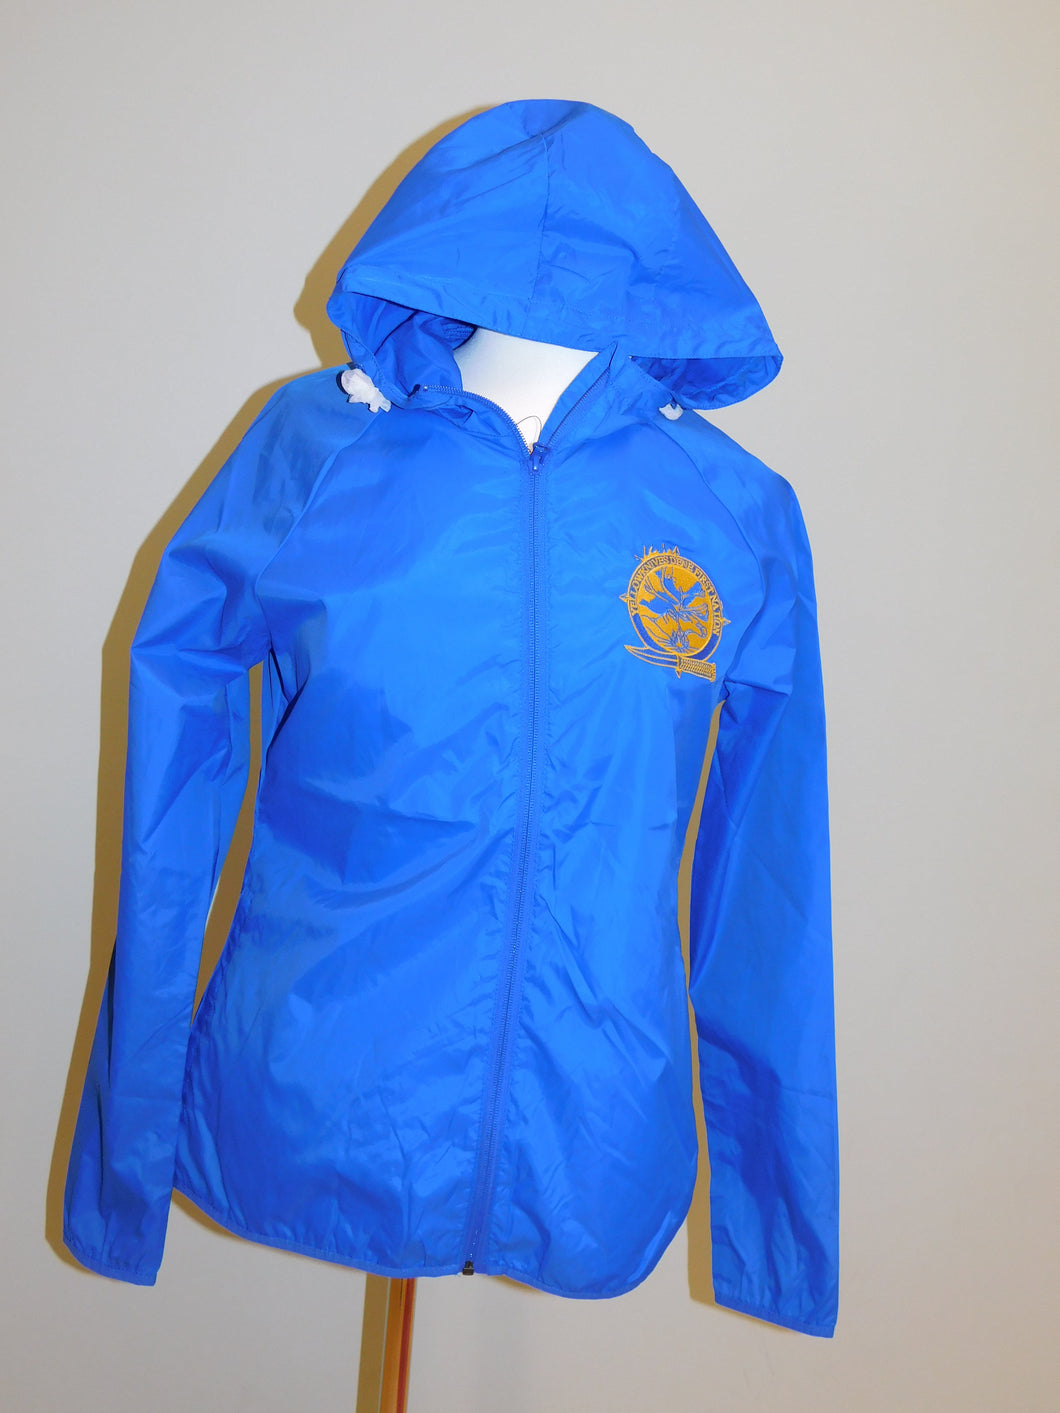 YKDFN Woman's Wind Jacket - Blue